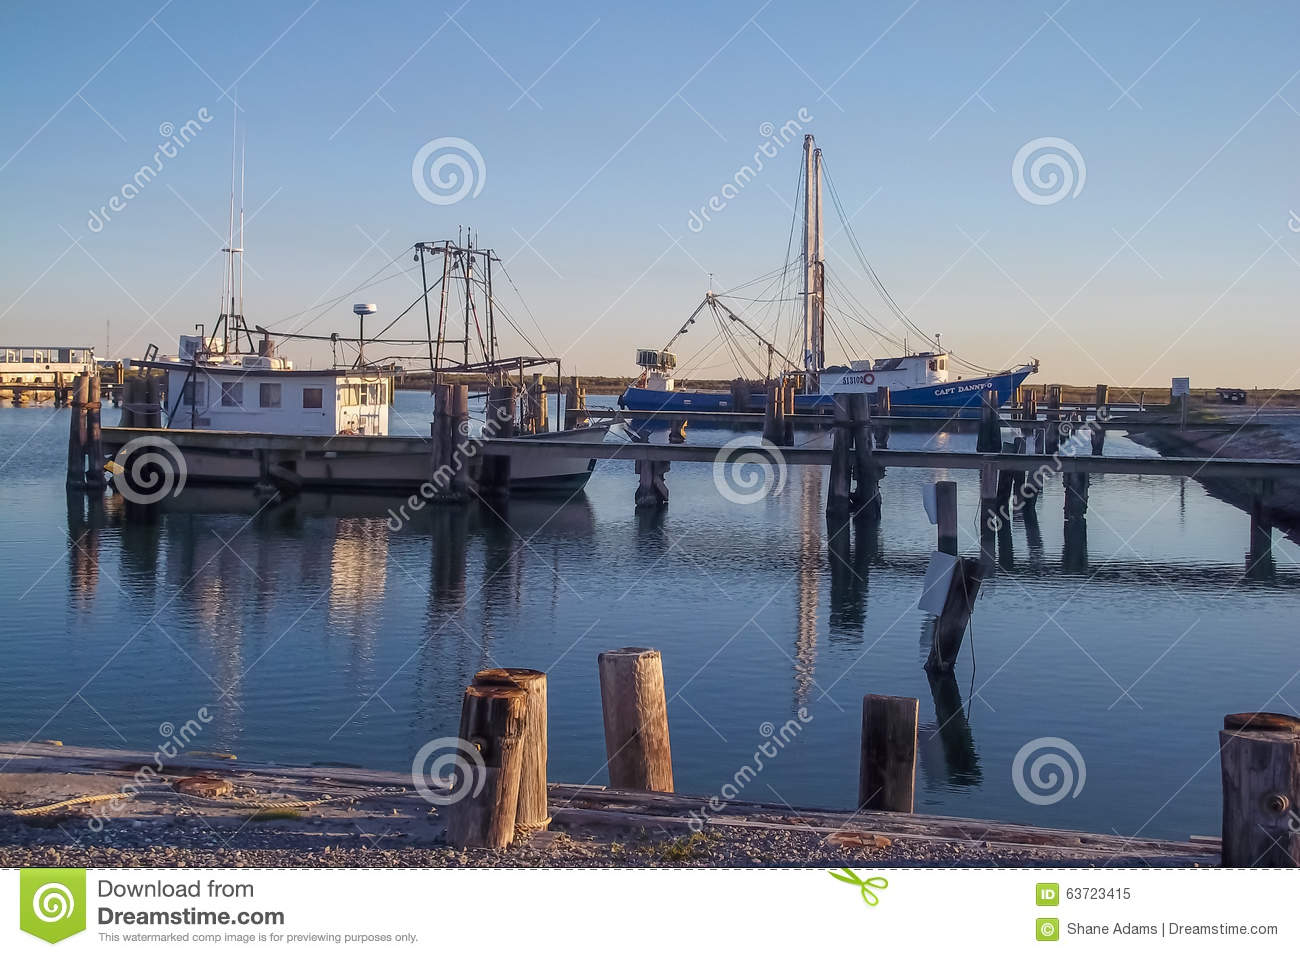 Port fourchon louisiana stock photo image 63723415 for Commercial fishing boats for sale gulf coast